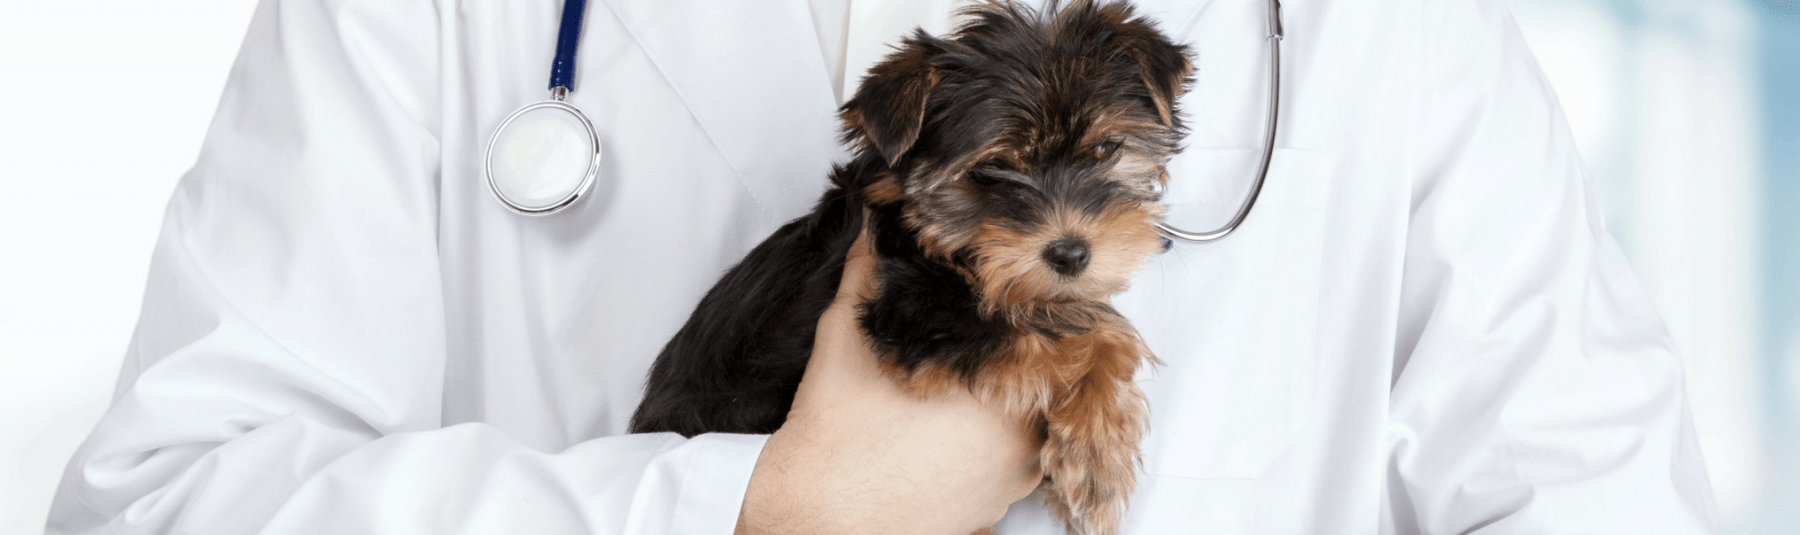 A small Yorkshire Terrier puppy is held by a vet